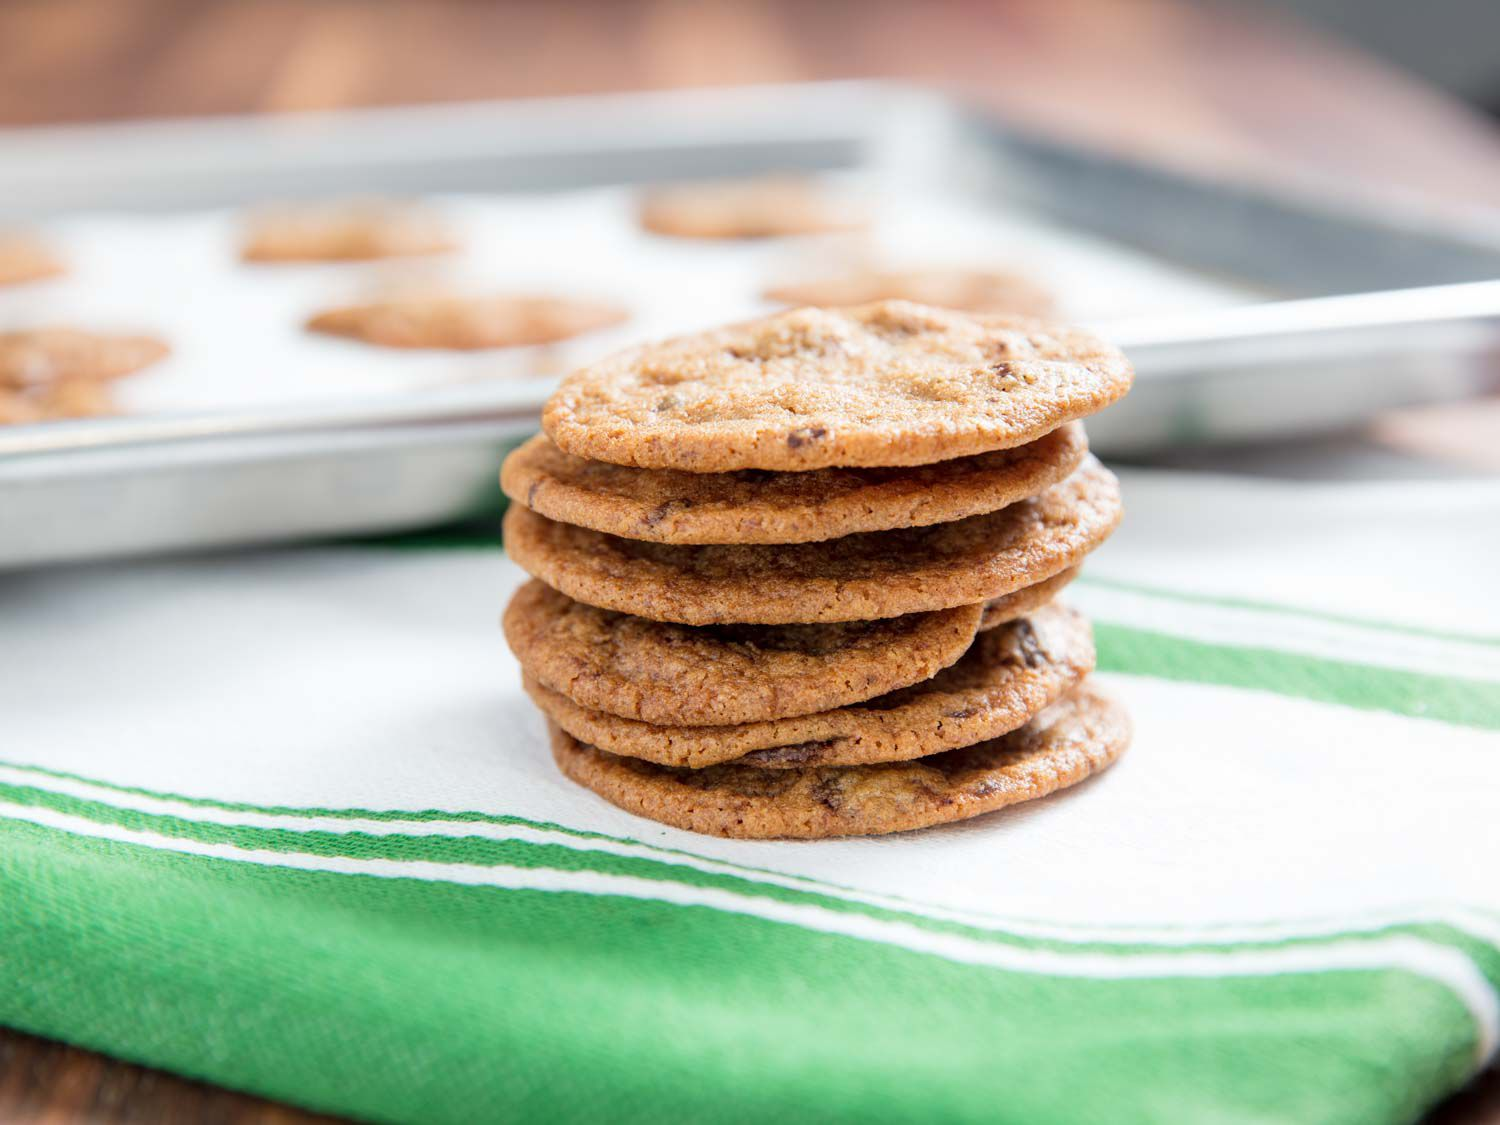 A stack of Tate's style thin chocolate chip cookies